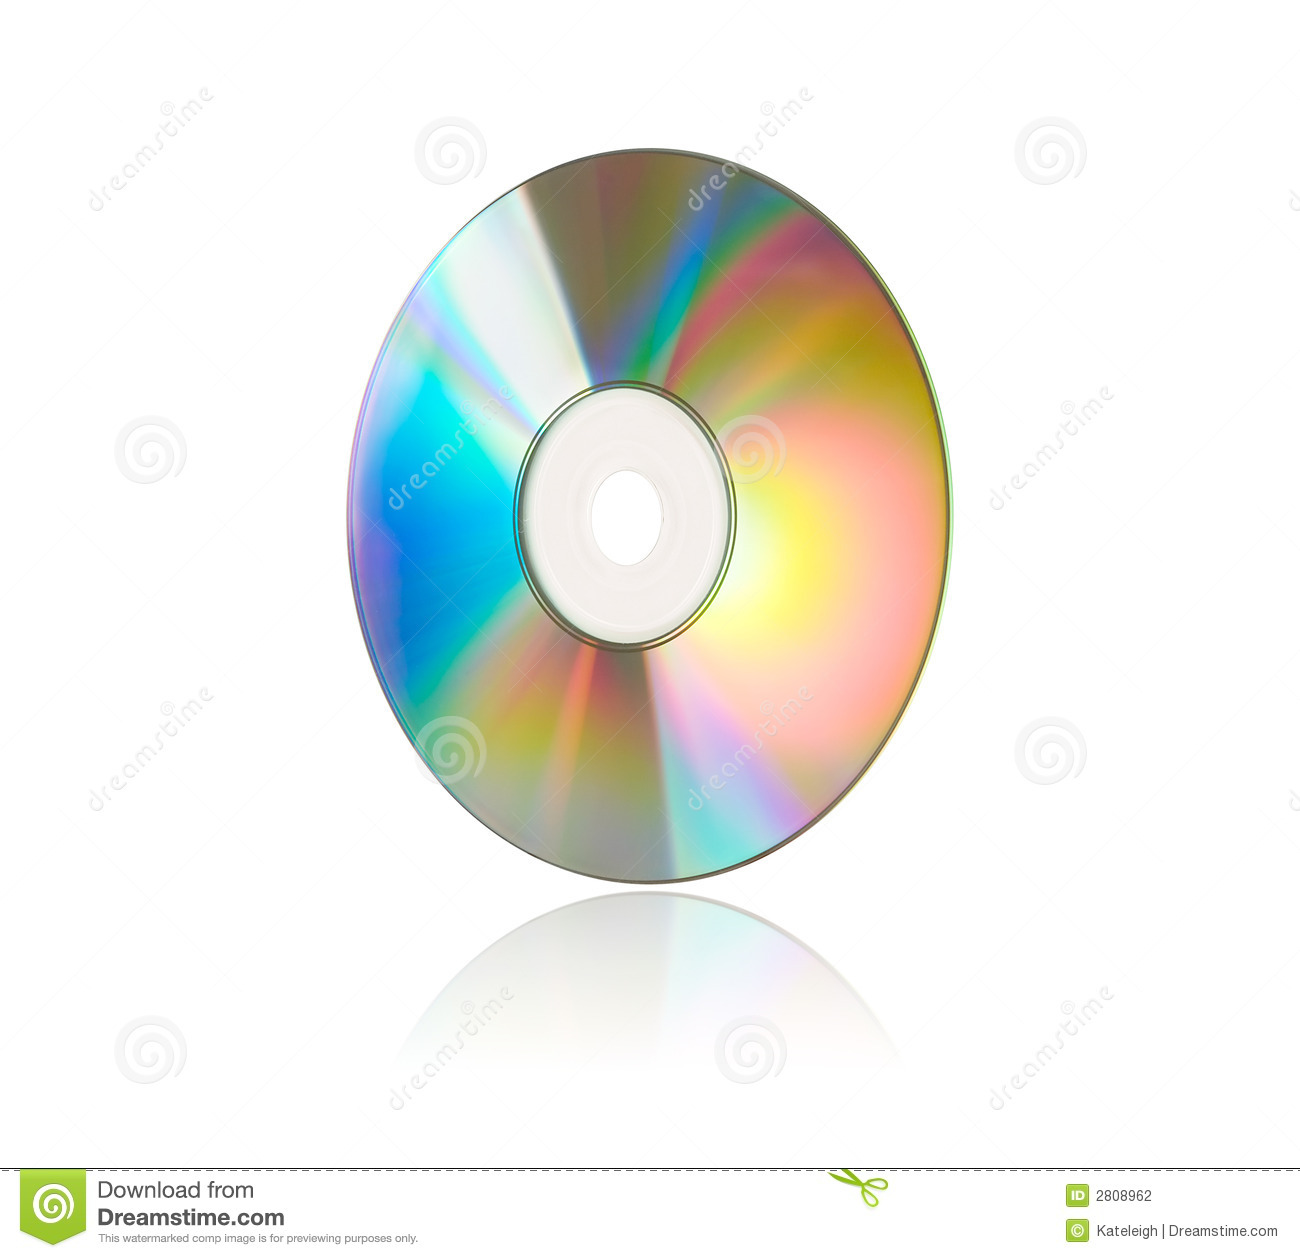 Compact Disc on White